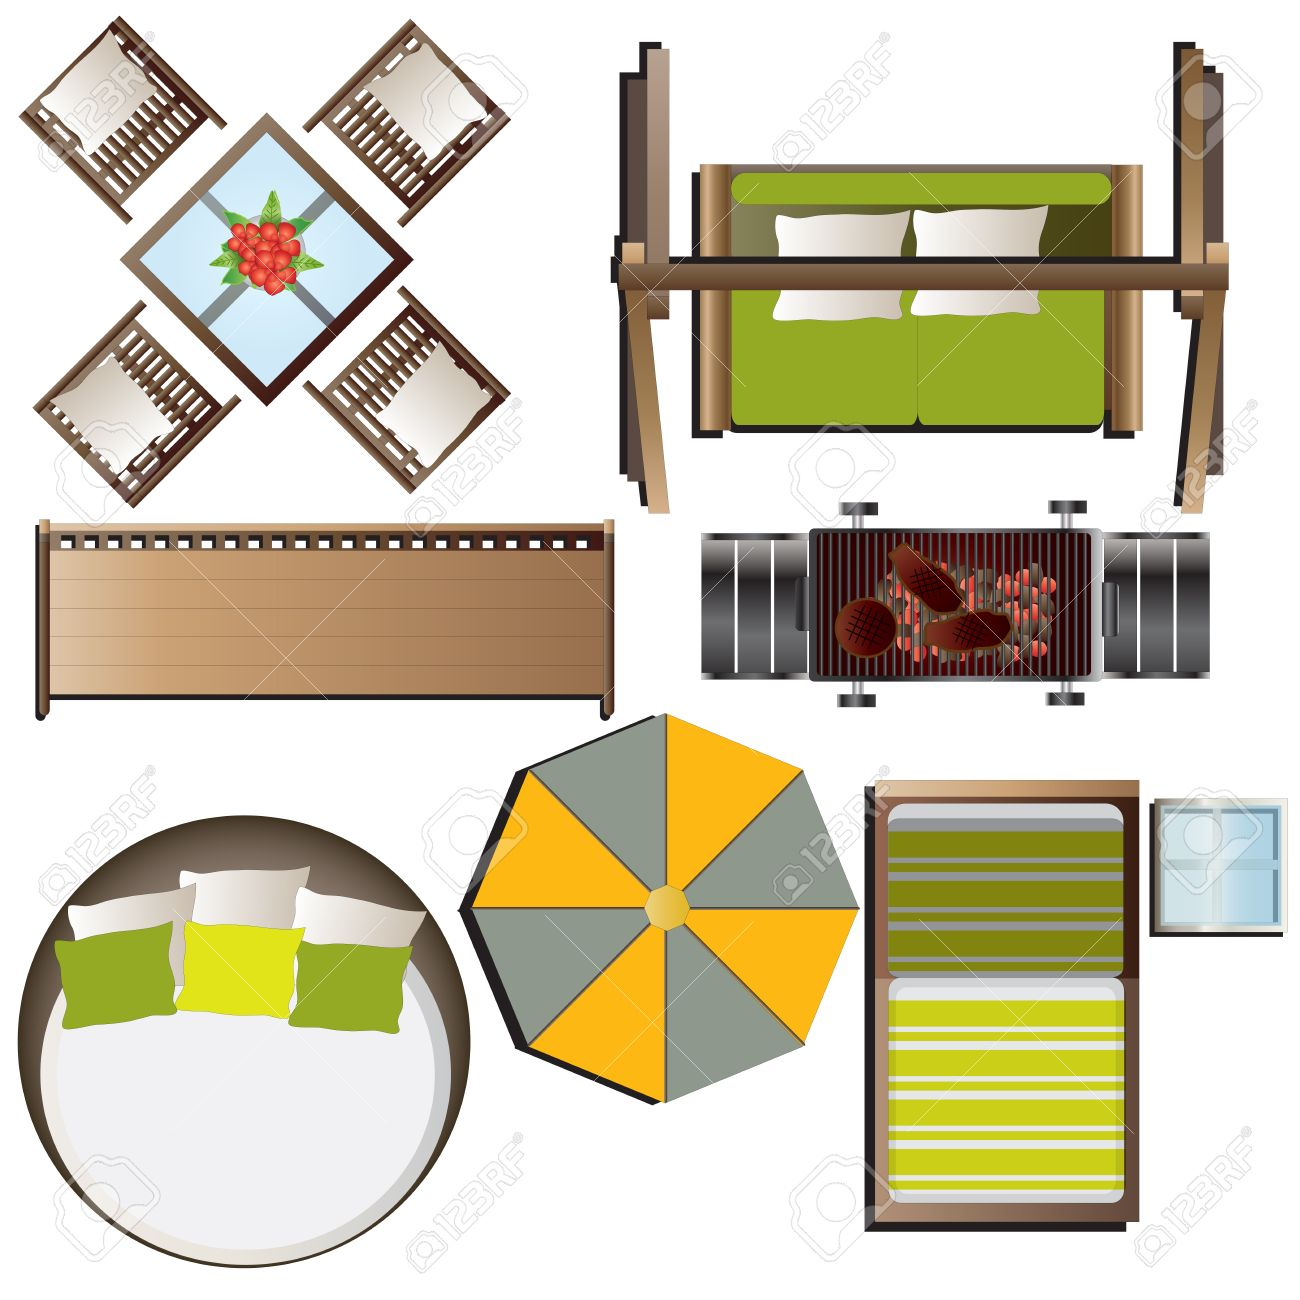 outdoor furniture top view set 16 for landscape design vector illustration stock vector 48756157